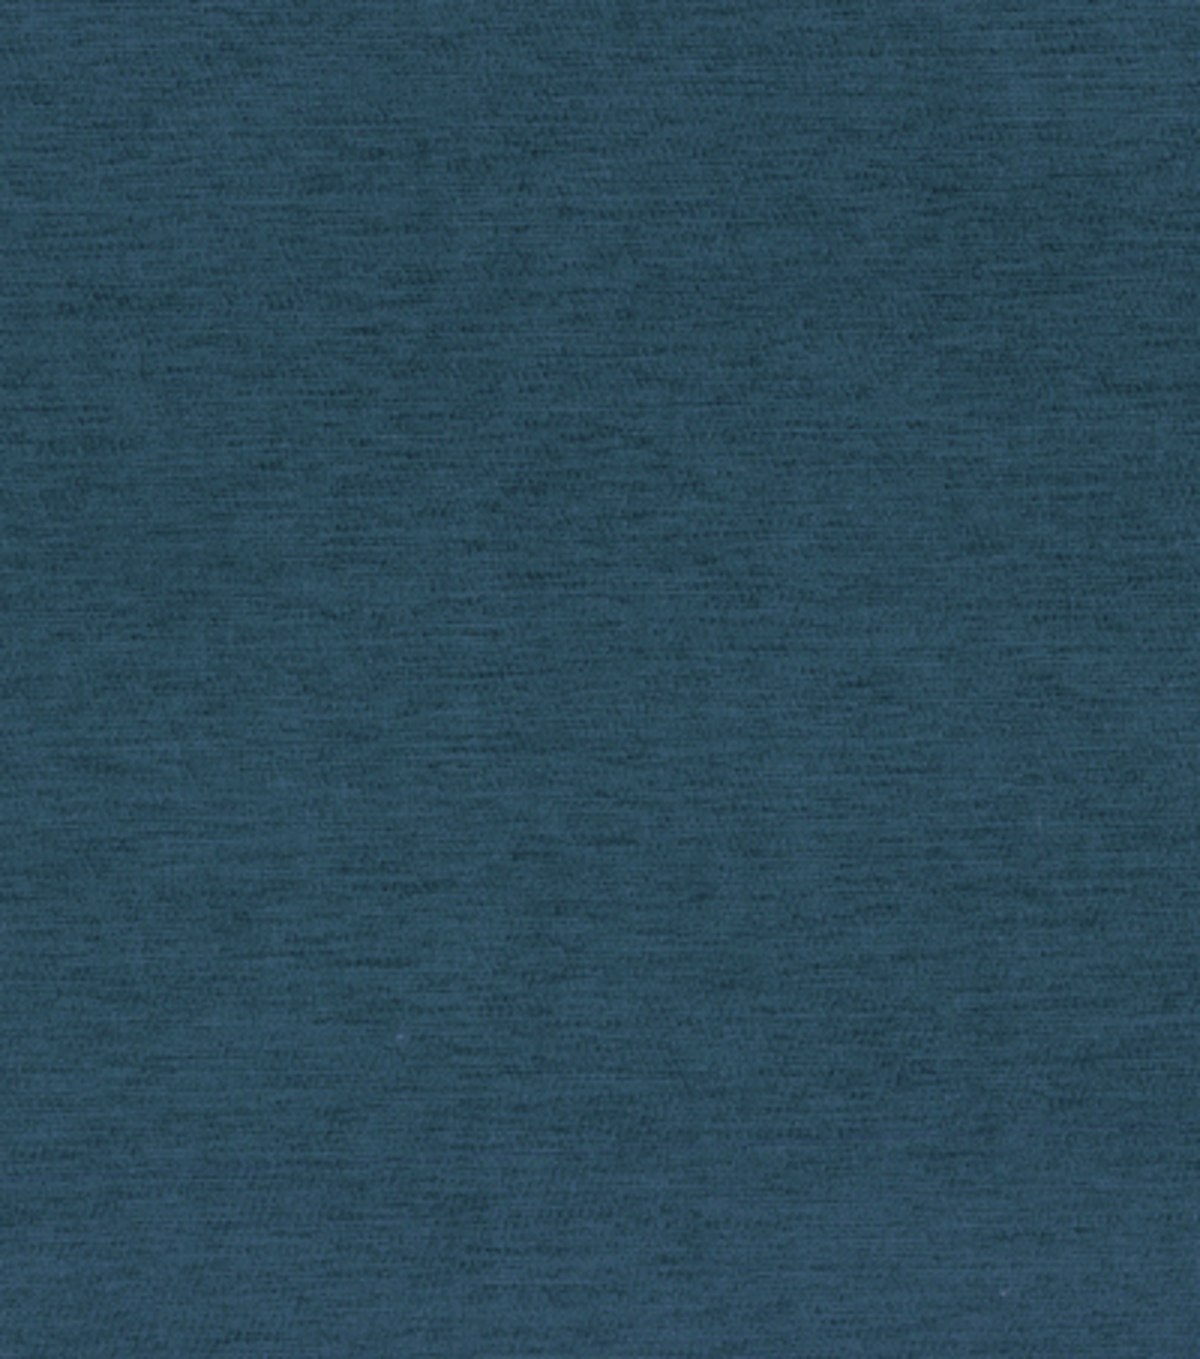 Superbe Richloom Studio Multi Purpose Decor Fabric 55\u0022 Haskett Teal